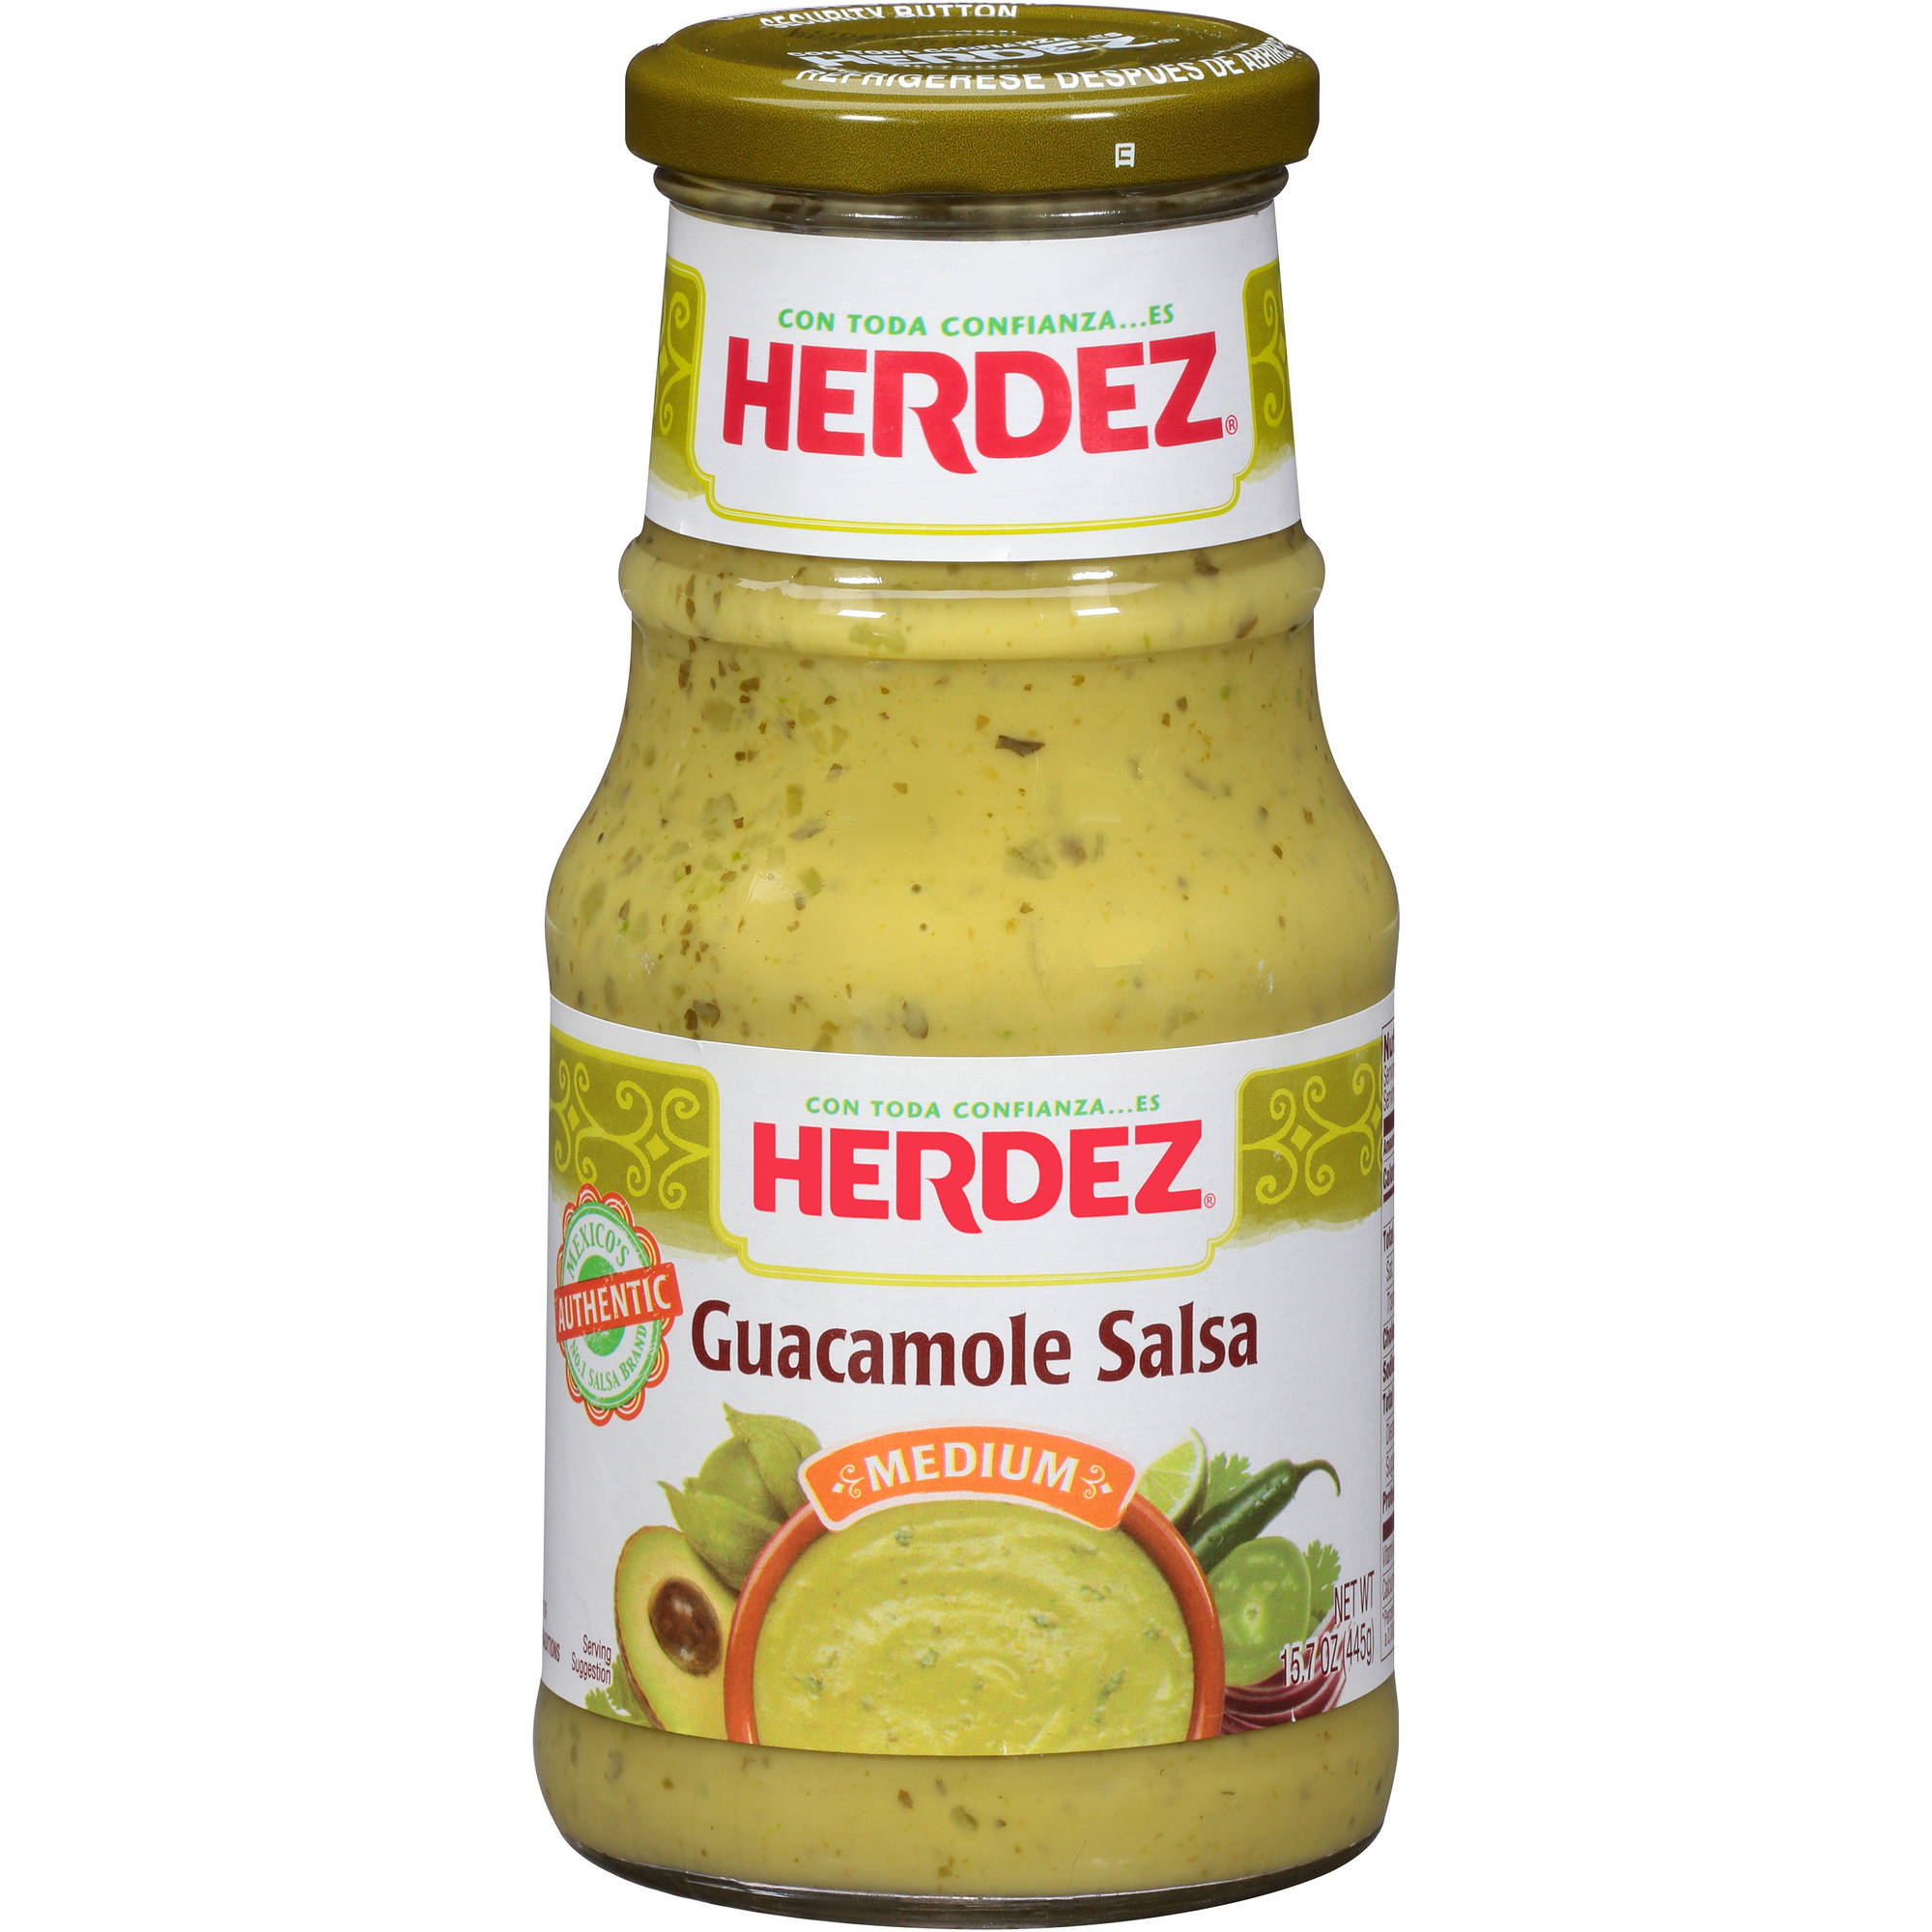 Herdez Medium Guacamole Salsa, 15.7 oz